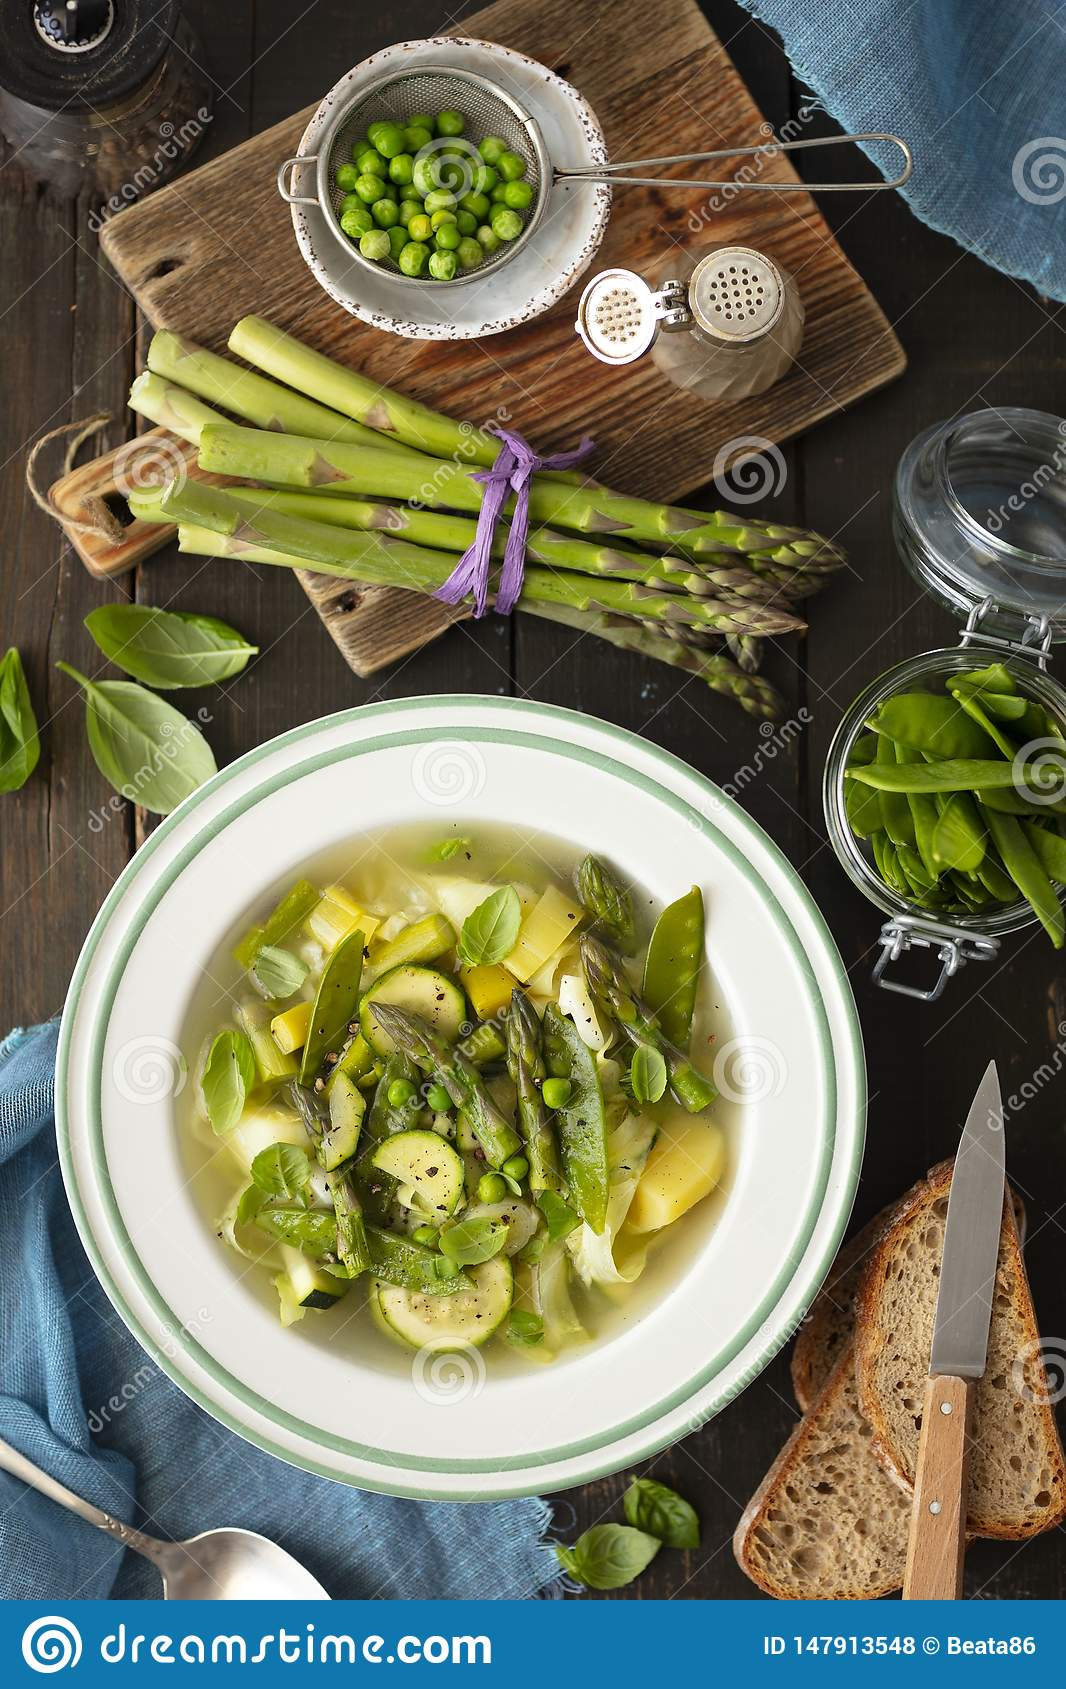 Minetsrone soup with potatoes, zucchini and asparagus